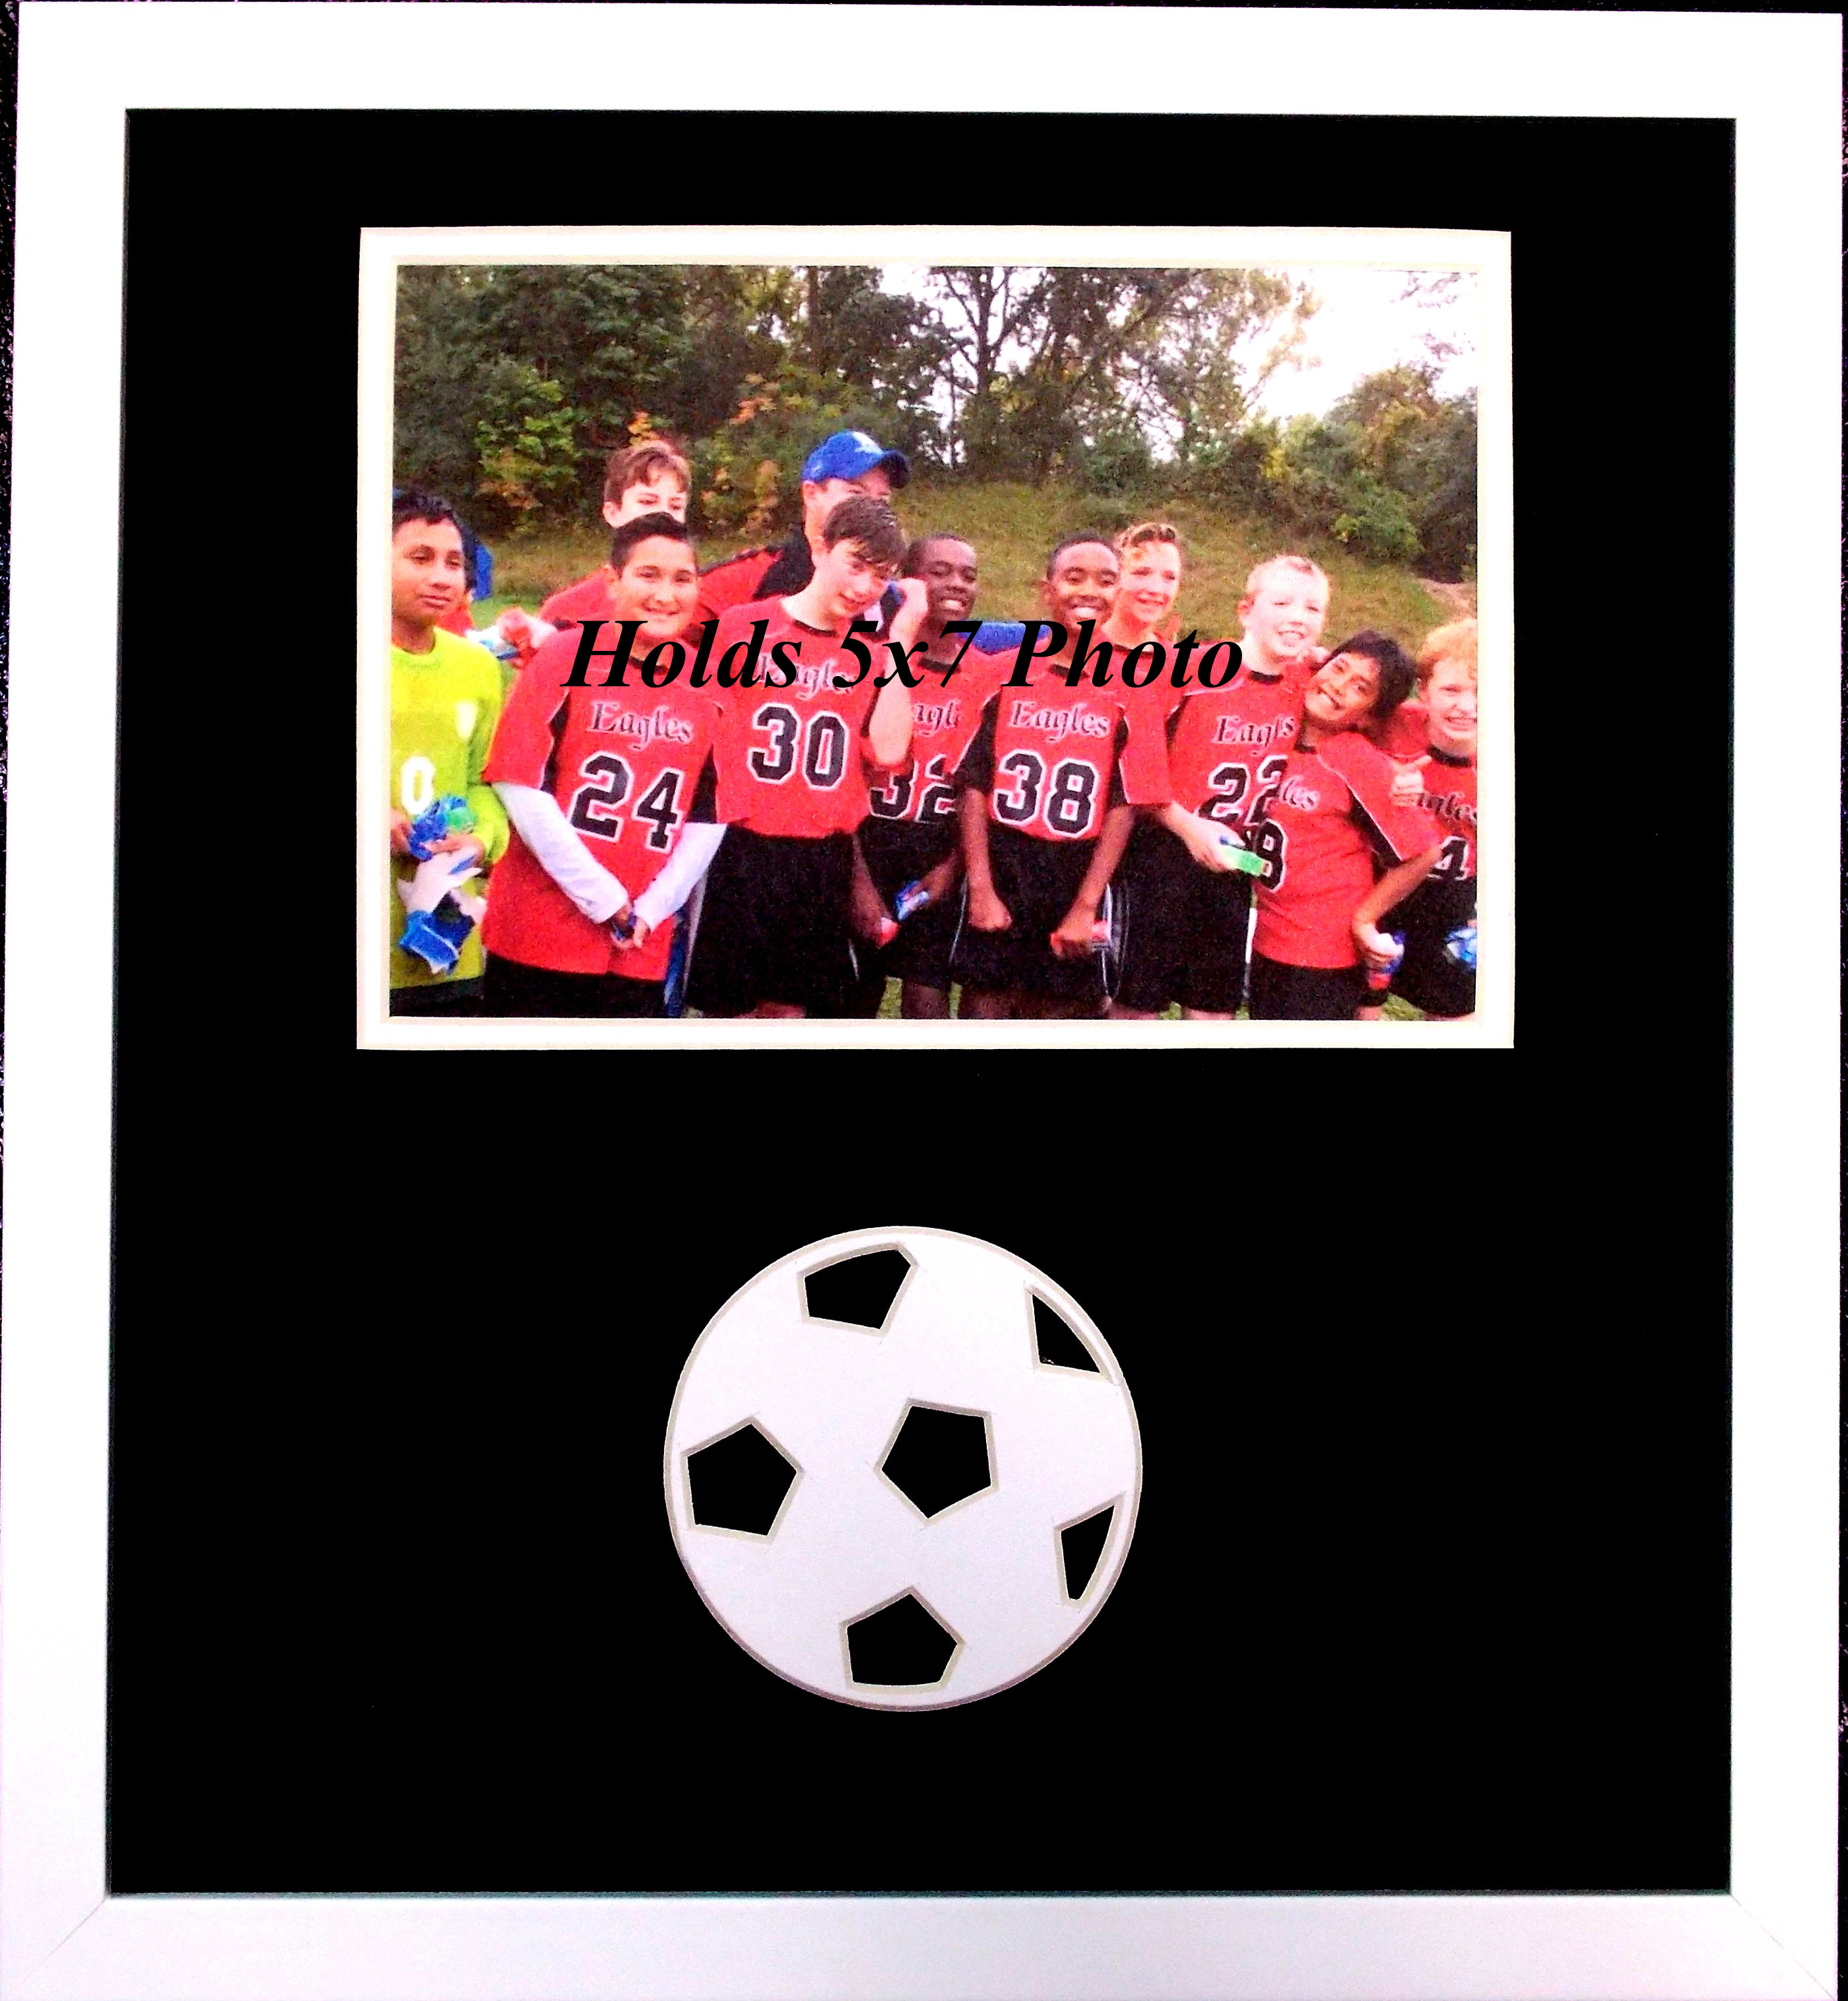 Wall mount picture frame black and white soccer ball wood frame wall mount picture frame black and white soccer ball wood frame for 5x7 photo novelty photo frame jeuxipadfo Image collections